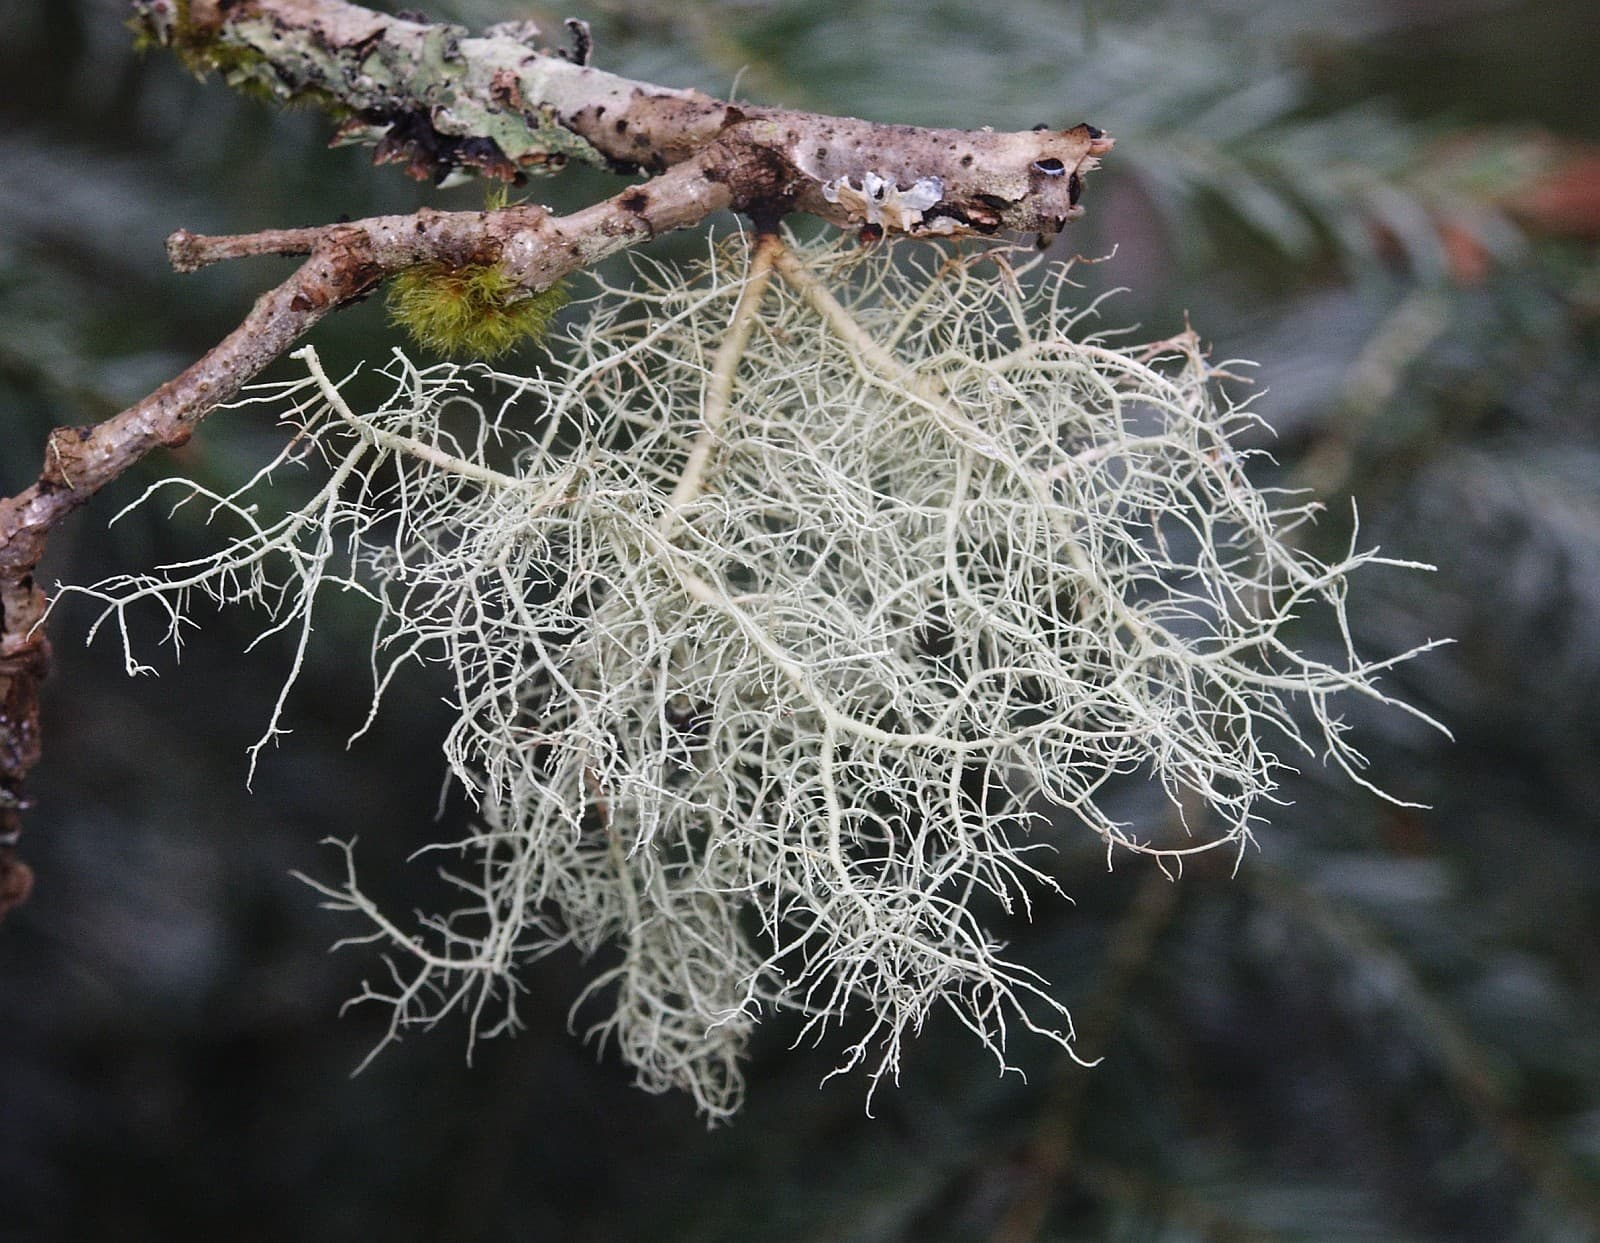 beard lichen photo - 1